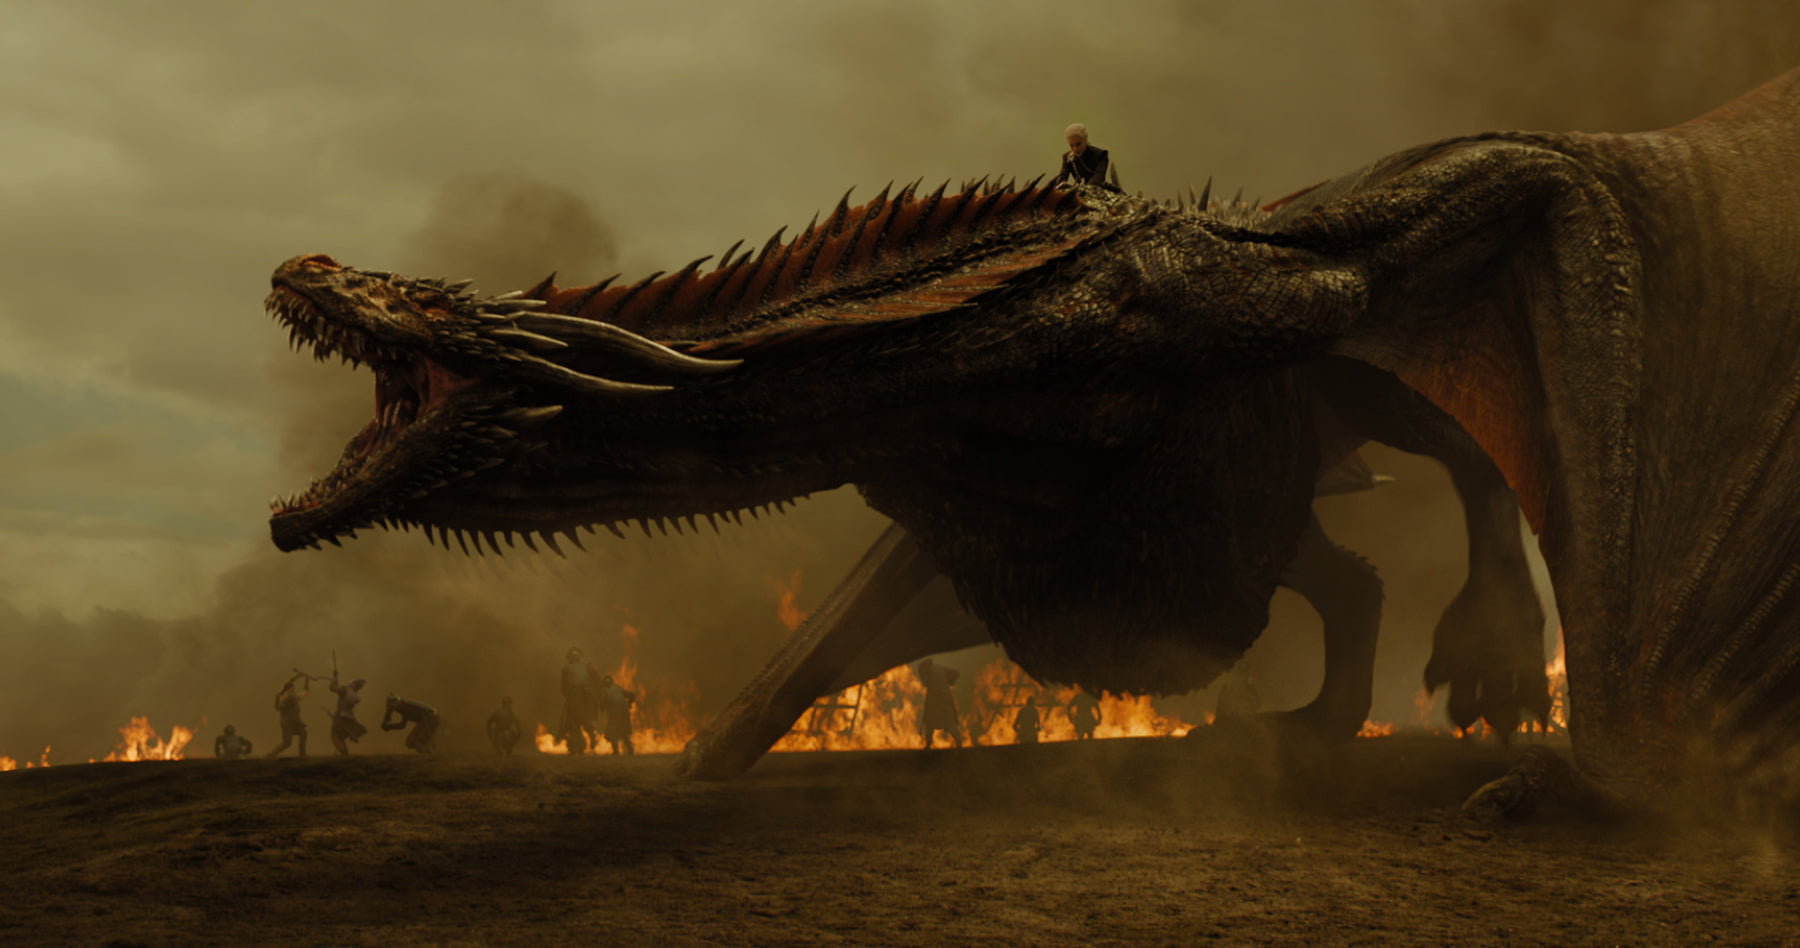 Image of Daenerys Targaryen riding a scaly dragon into a war scene with fires underneath them and people fighting